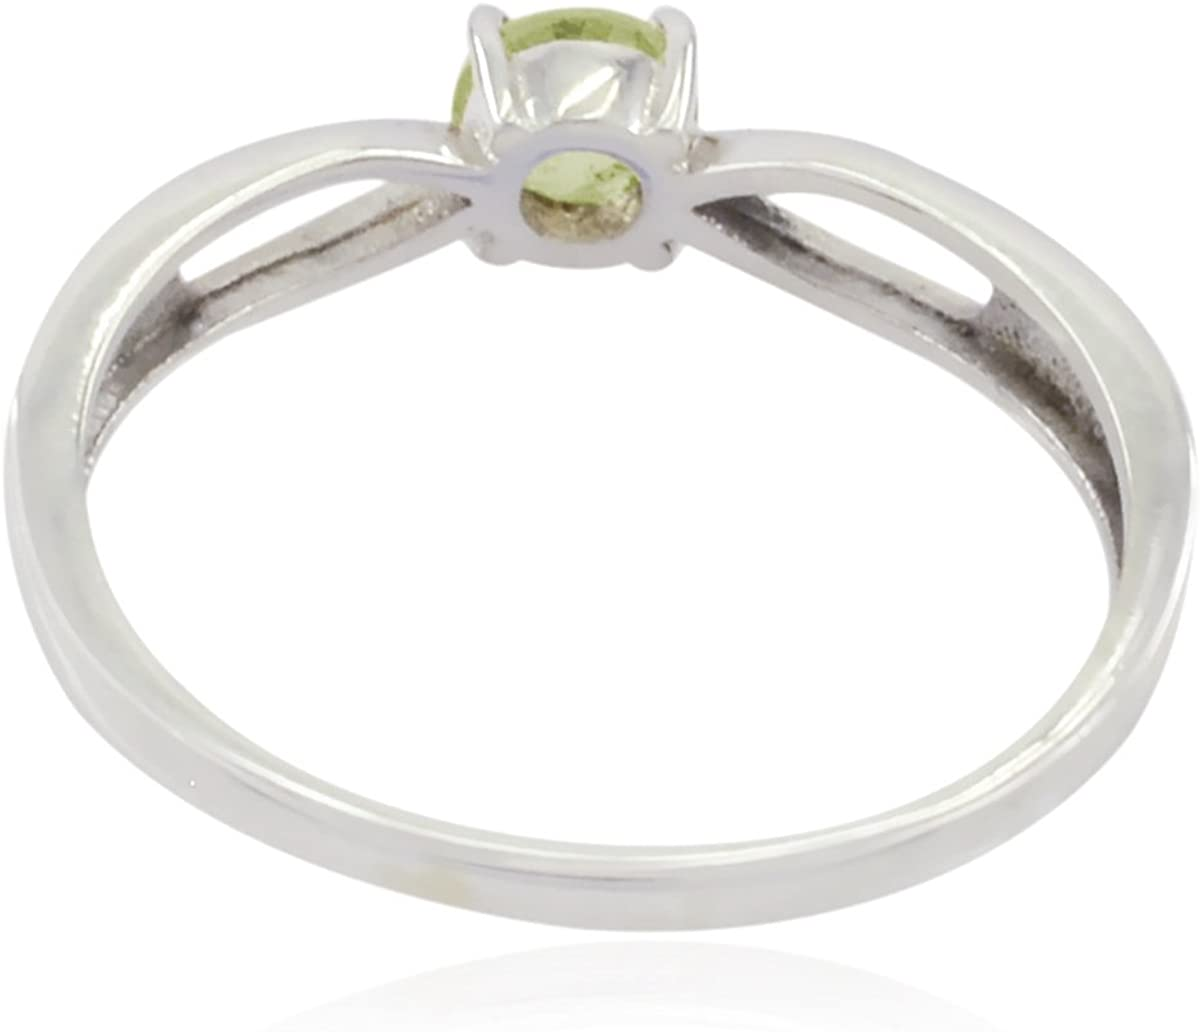 925 Silver Green Prehnite Genuine Gems Ring Wedding Jewelry fine Seller Gift for Thanks Giving Oval Cut Genuine Gems Round Faceted Prehnite Rings